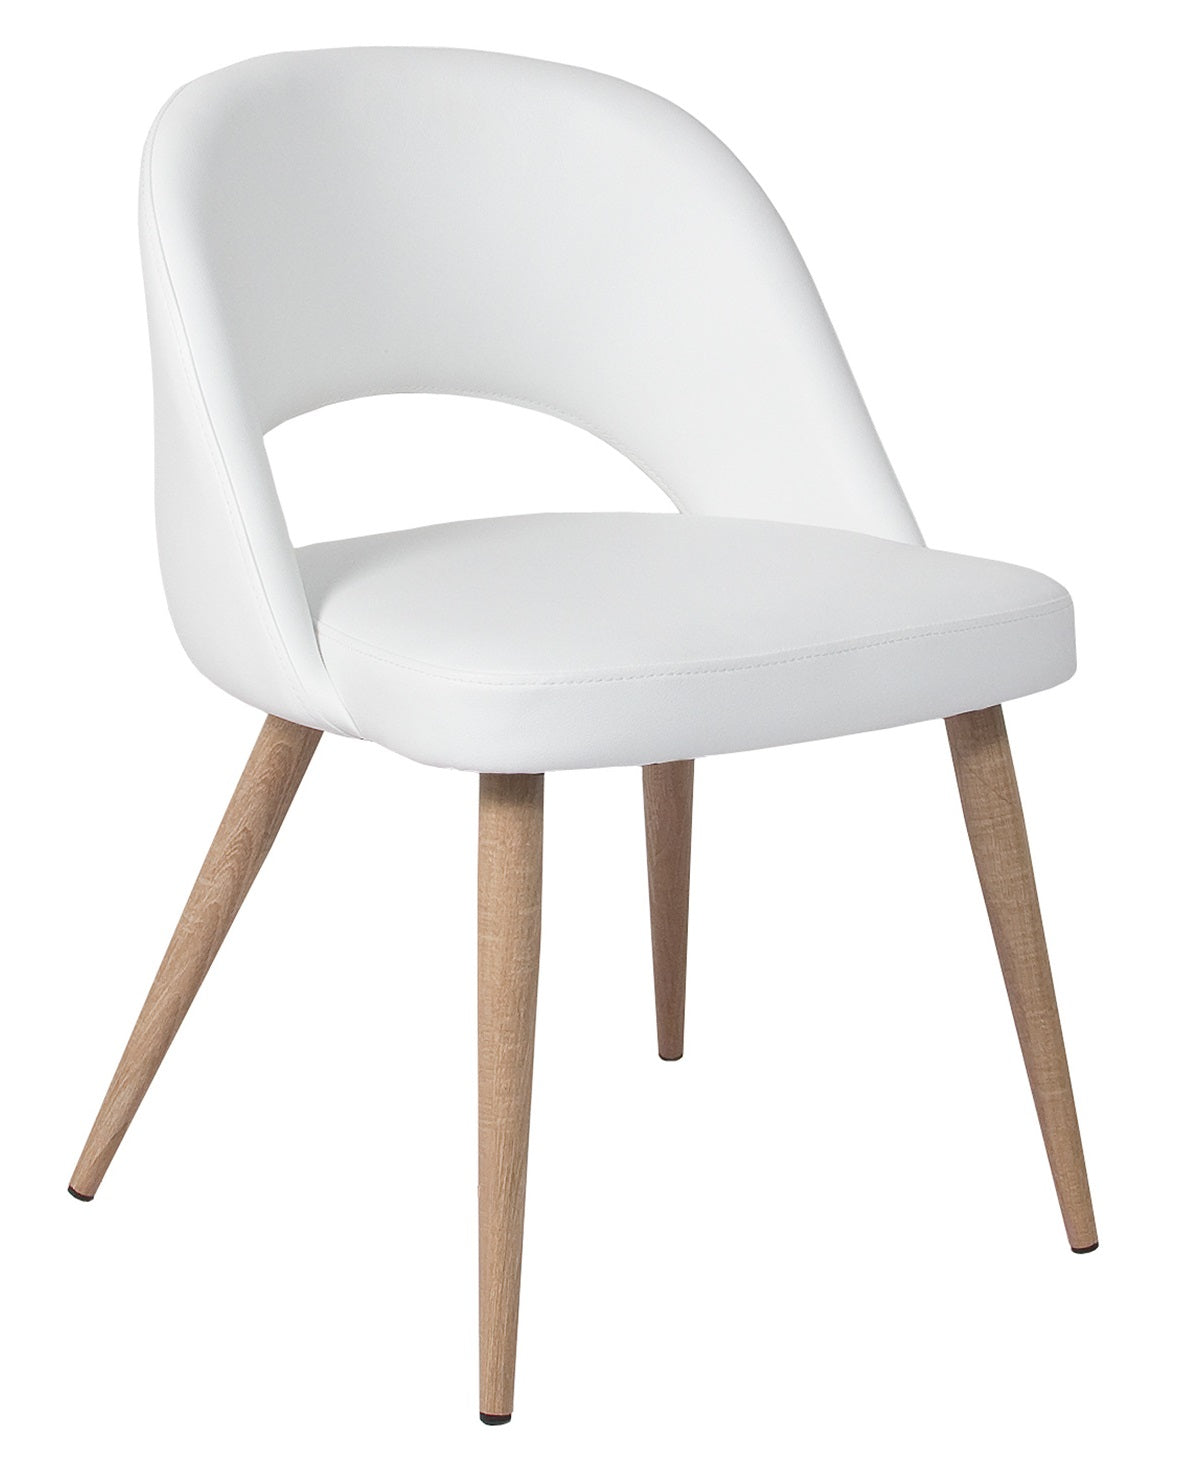 Harry Chair - White with White Oak Legs